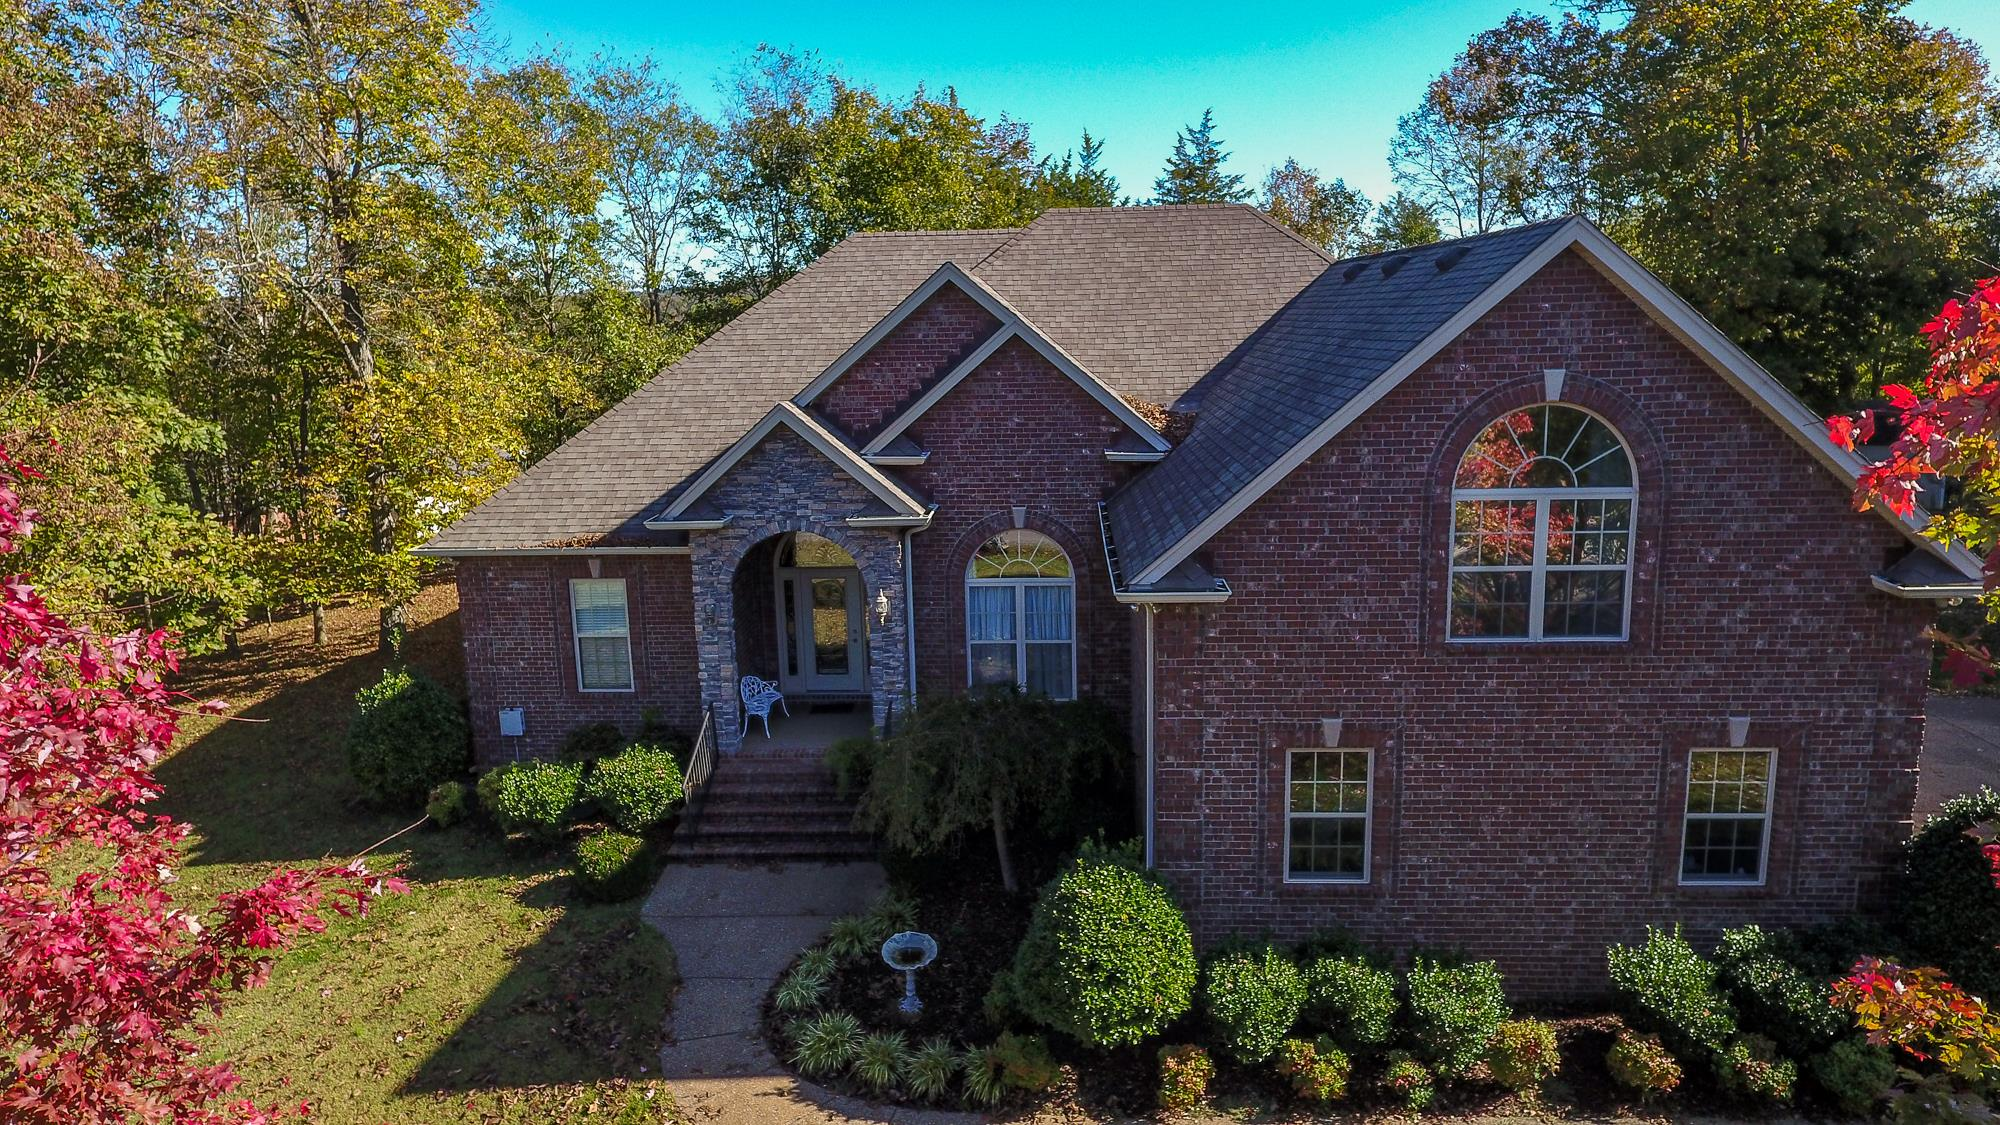 636 Gaylemore Dr, Goodlettsville, TN 37072 - Goodlettsville, TN real estate listing